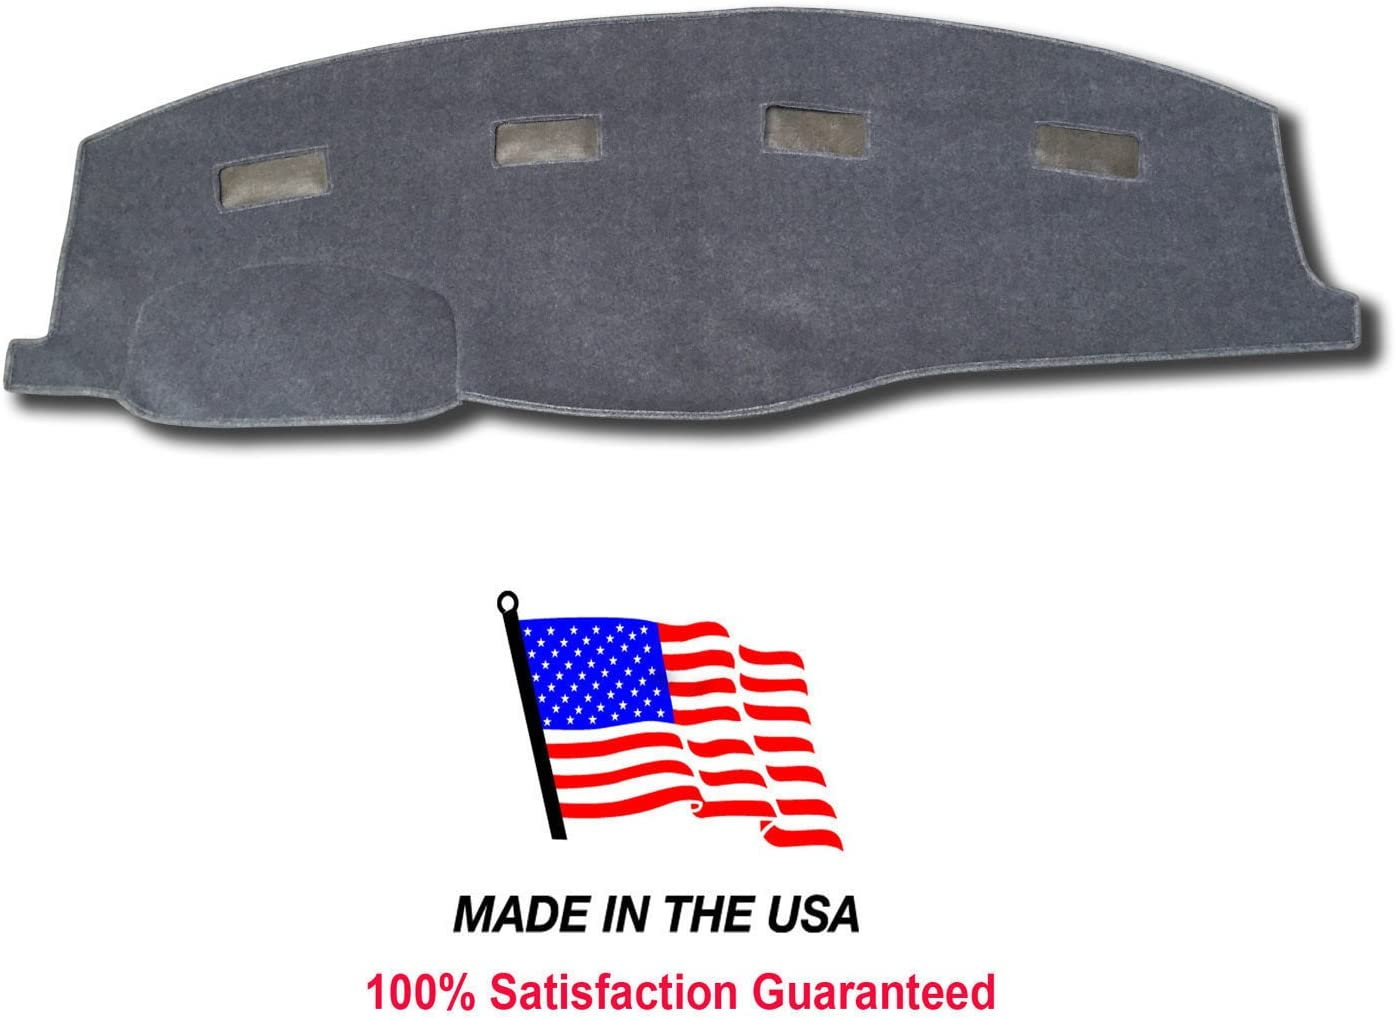 06-08 Gray AKMOTOR Dashboard Cover Dash Cover Mat Custom Fit for Dodge Ram 1500//2500//3500 2006-2008,2500//3500 2009 Without Dash Speakers KJ16